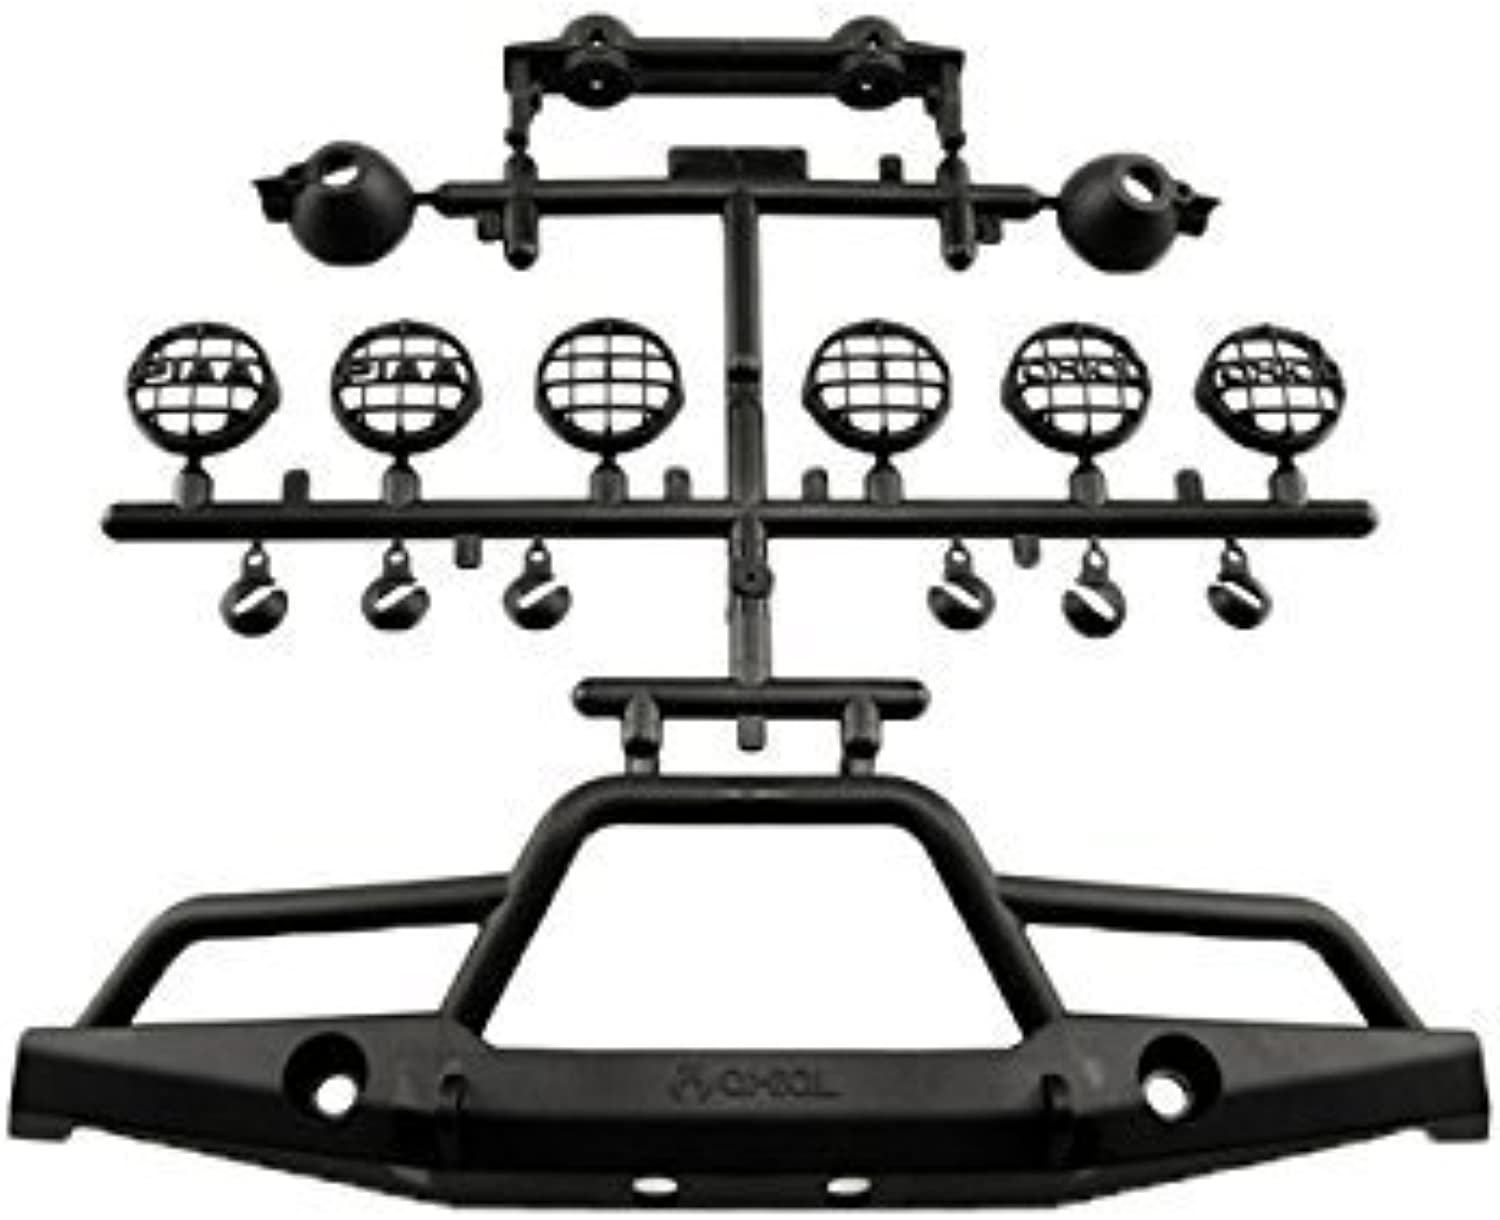 Axial AX80039A Front Plate Bumper Set (1 10 Scale) by Axial